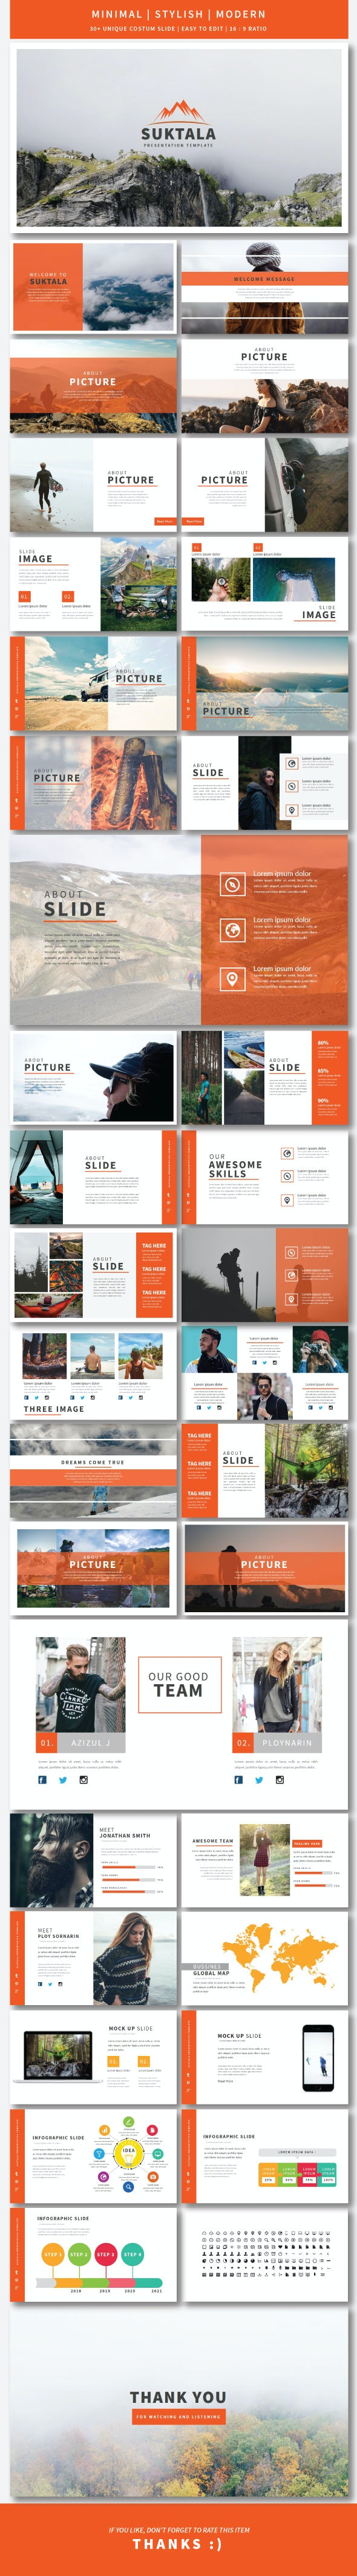 Suktala Google Slide Template - Google Slides Presentation Templates